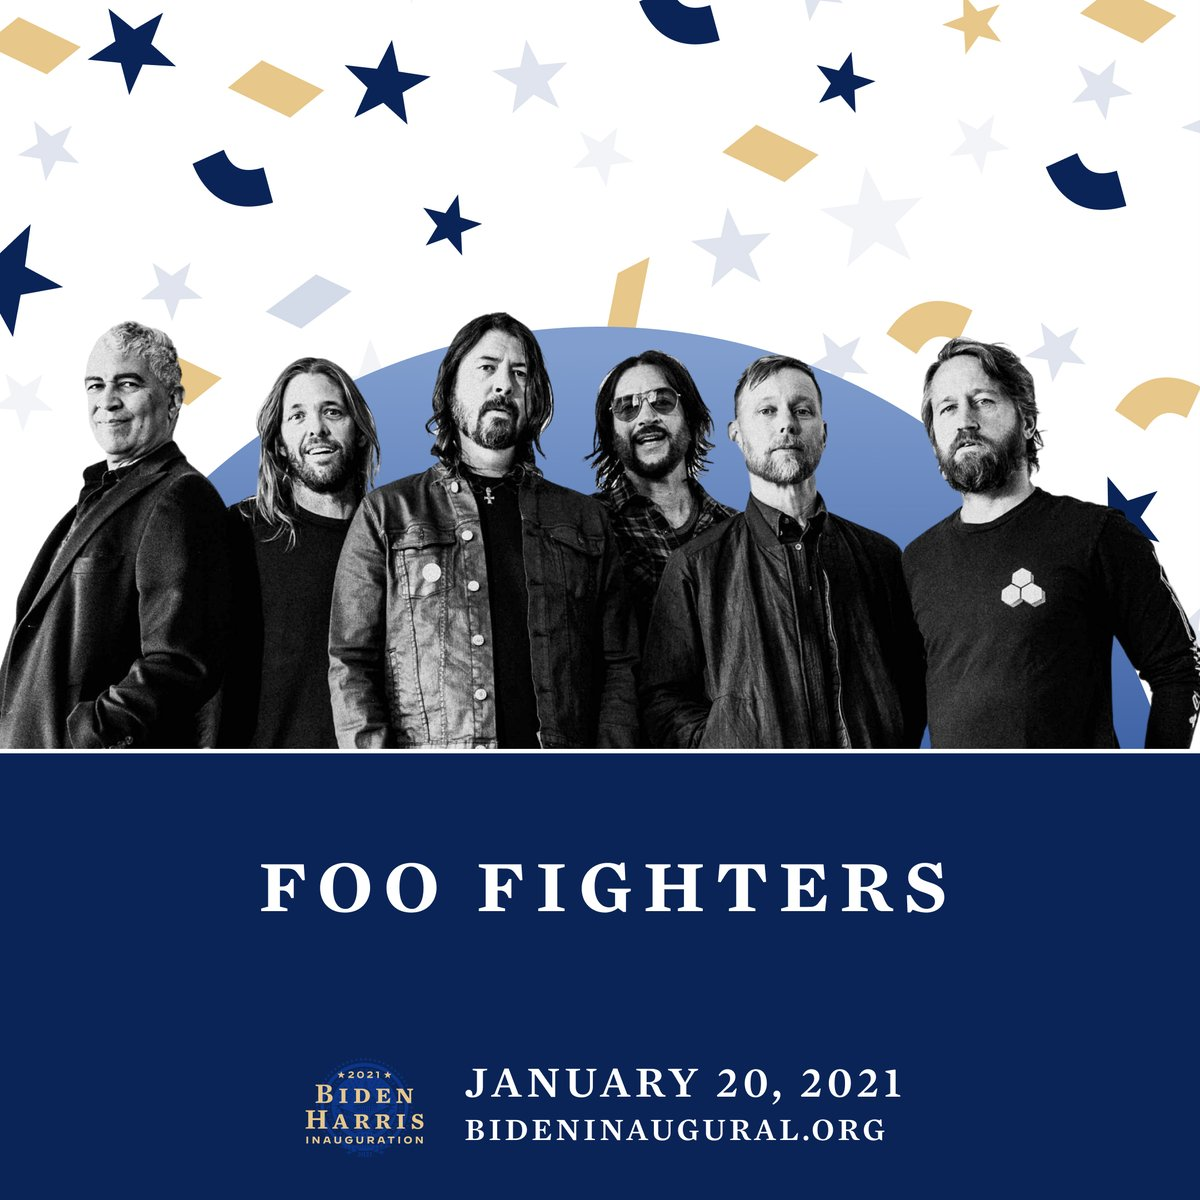 Announced today, Foo Fighters will be joining the inauguration celebration for @JoeBiden and @KamalaHarris. Tune in January 20th at 8:30pm ET. For more details on the event visit:    #Inauguration2021